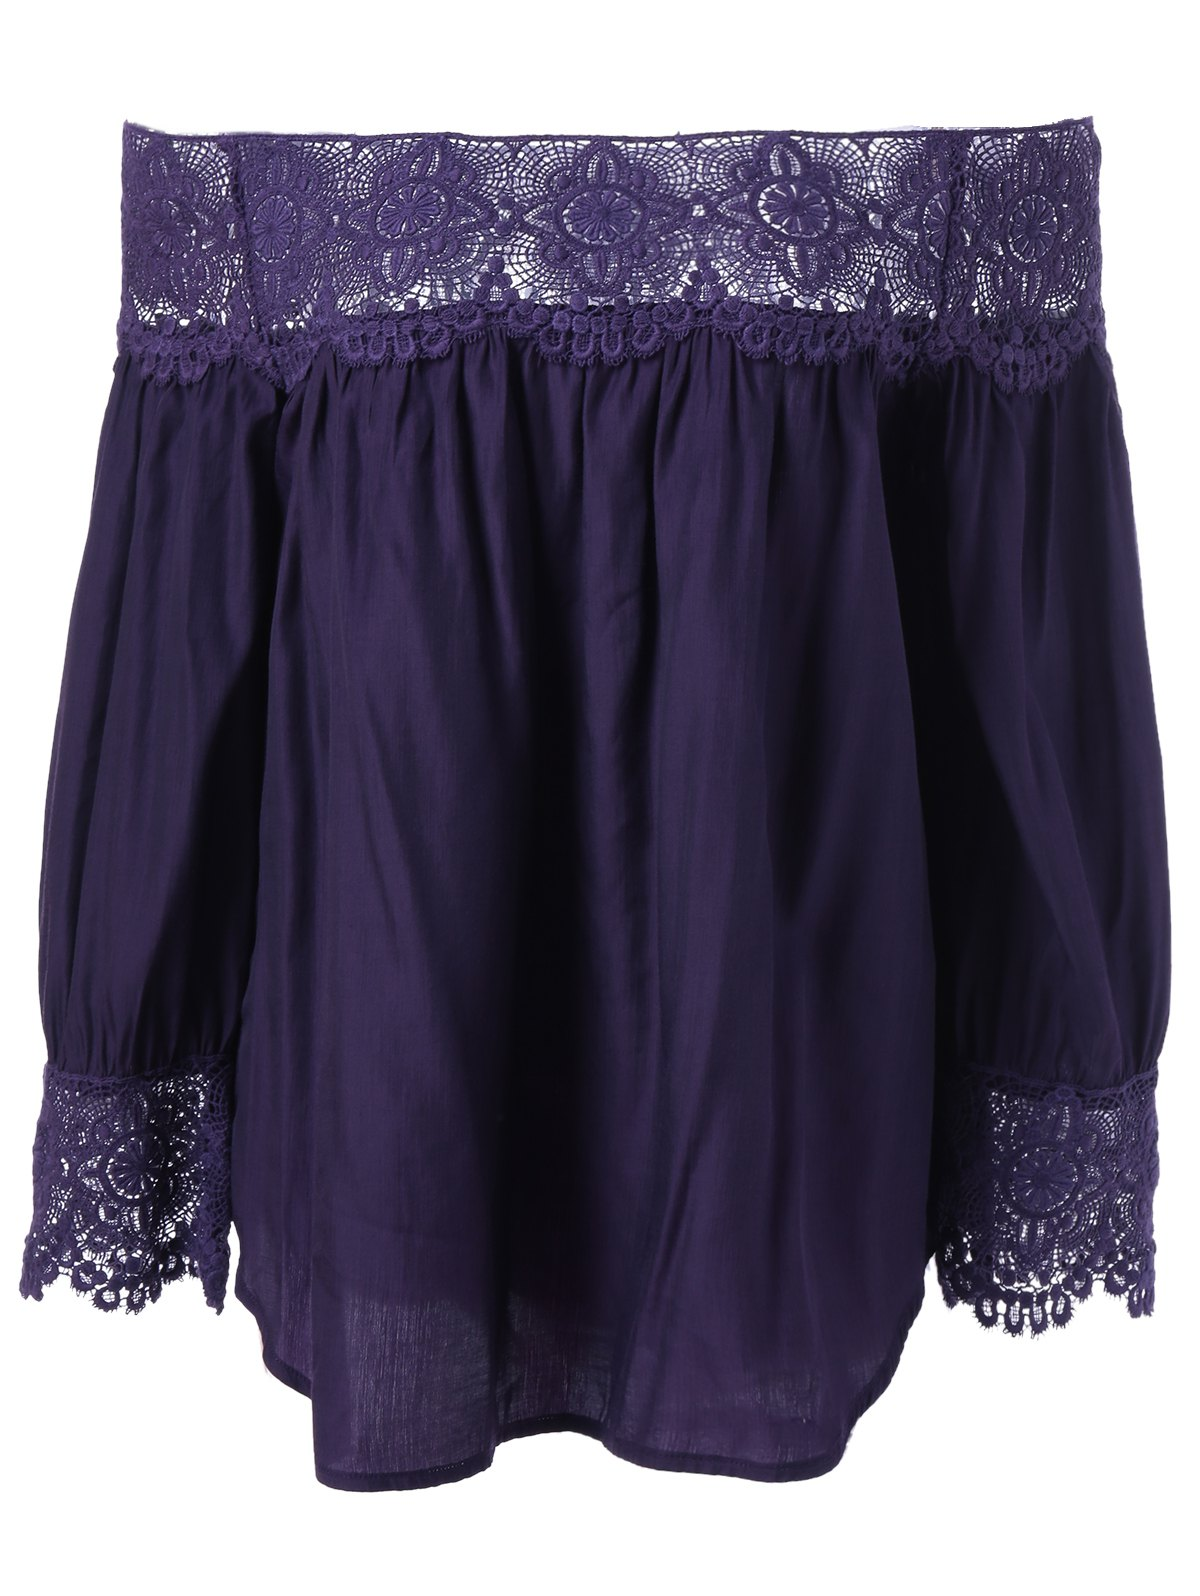 Casual Off-The-Shoulder Lace Spilicing Blouse - VIOLET XL